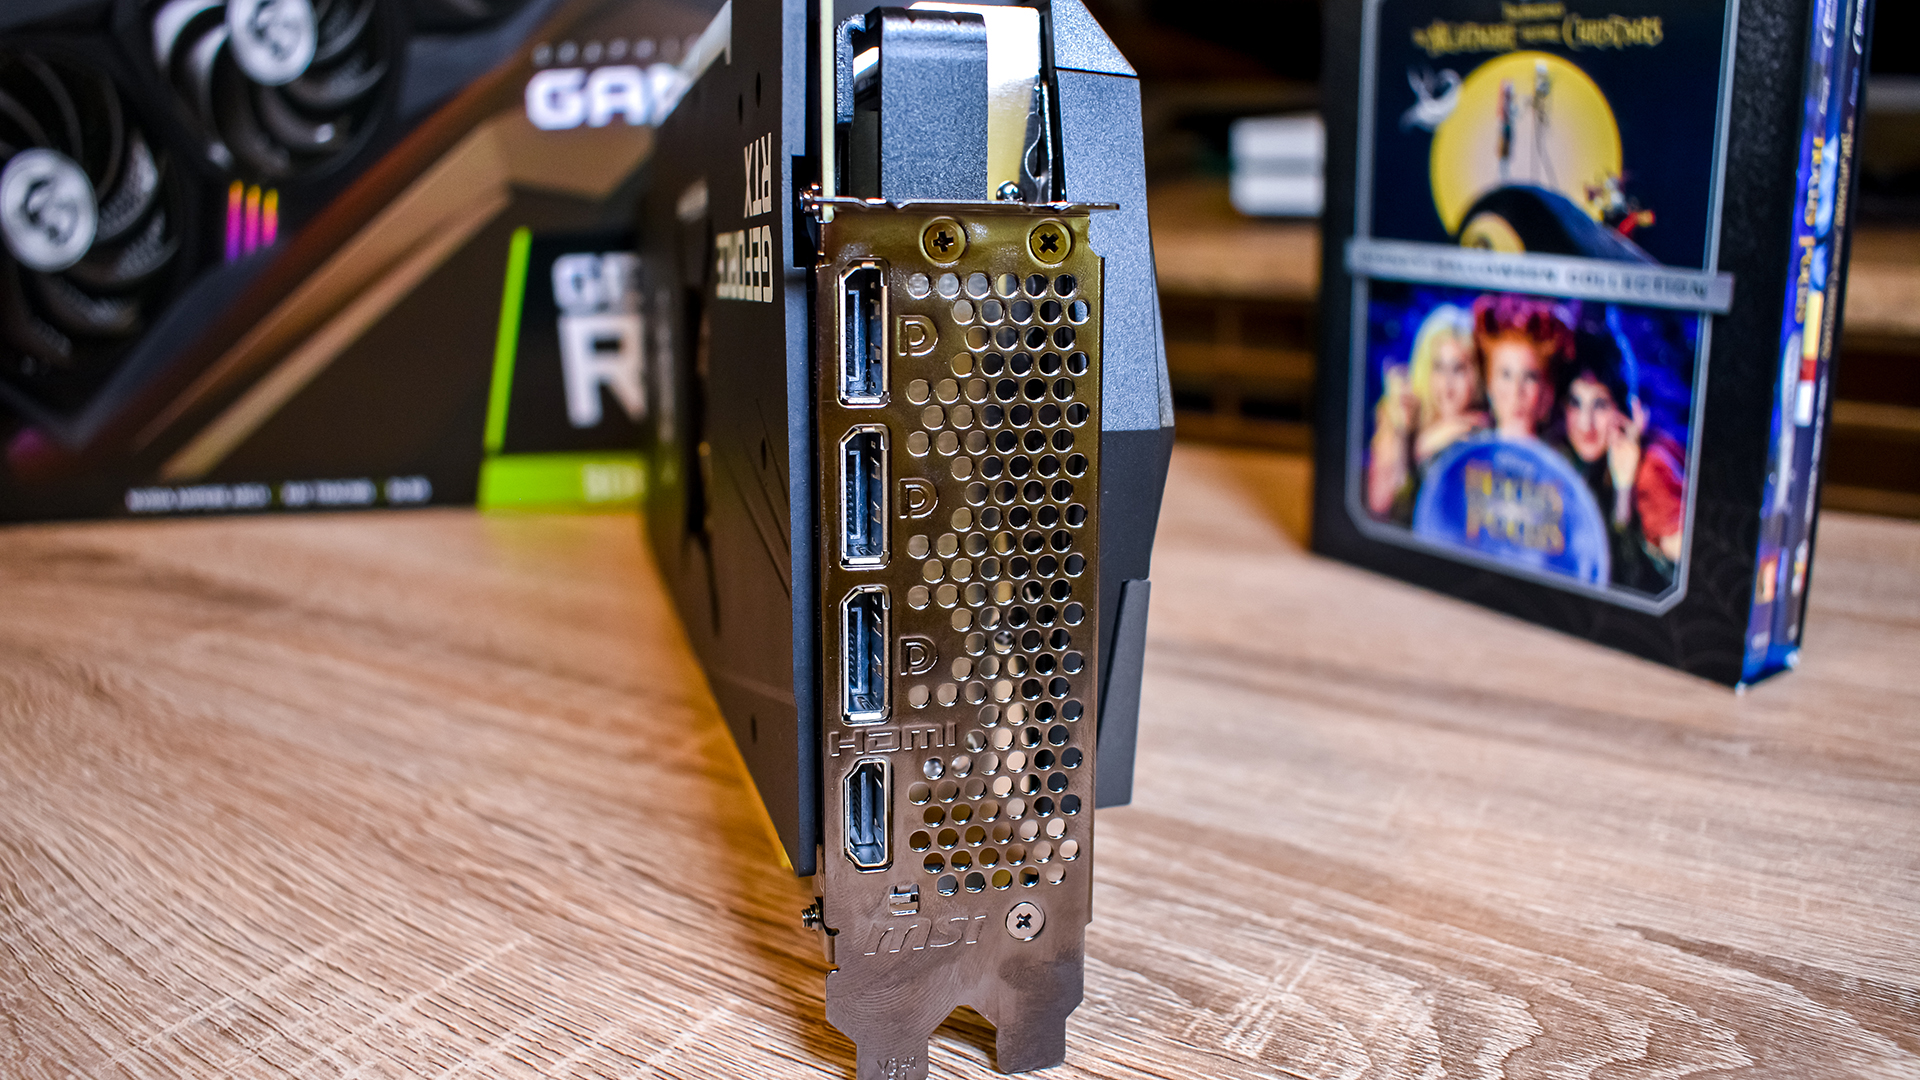 nvidia-rtx-3060-gpu-could-somehow-end-up-pricier-than-the-rtx-3060-ti